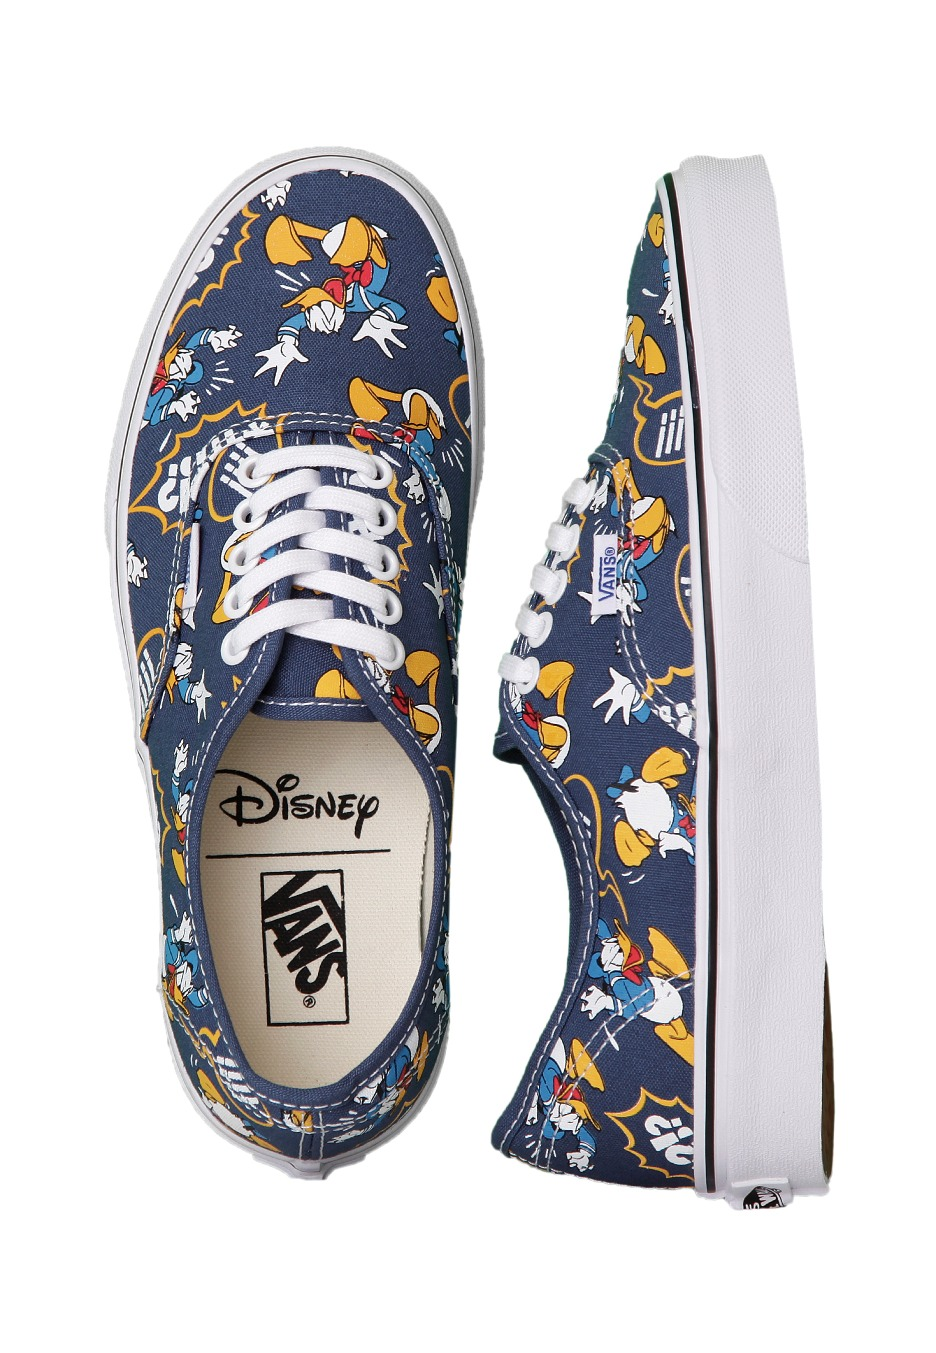 b00f9b72ca8ed8 Vans - Authentic Donald Duck Navy - Girl Shoes - Impericon.com UK